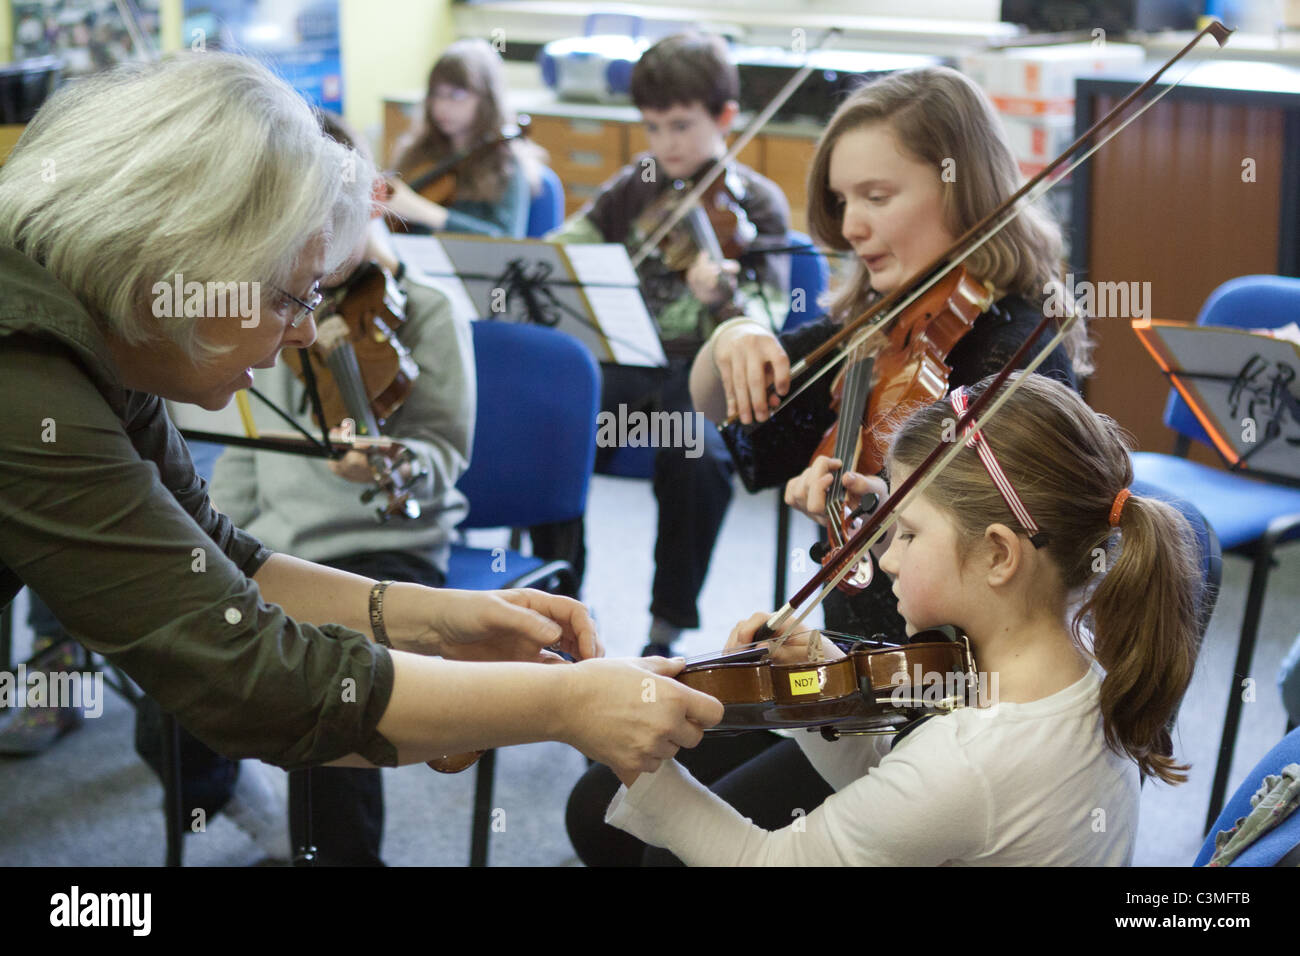 Young violinists playing their violins in  a youth music group / orchestra / band, with teacher helping a child - Stock Image